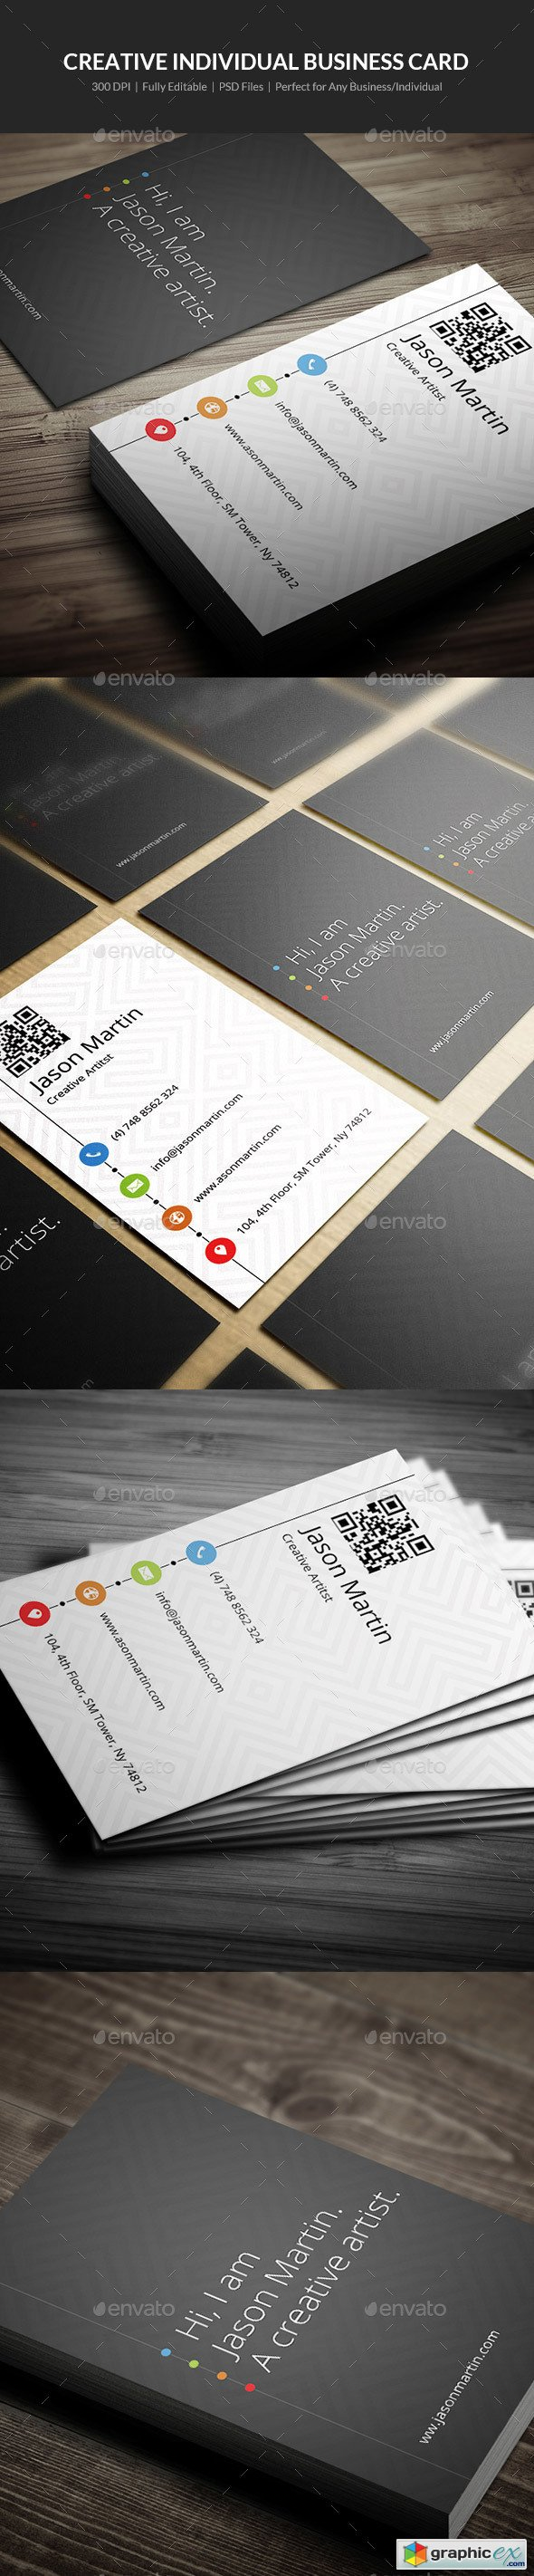 Creative Individual Business Card - 01